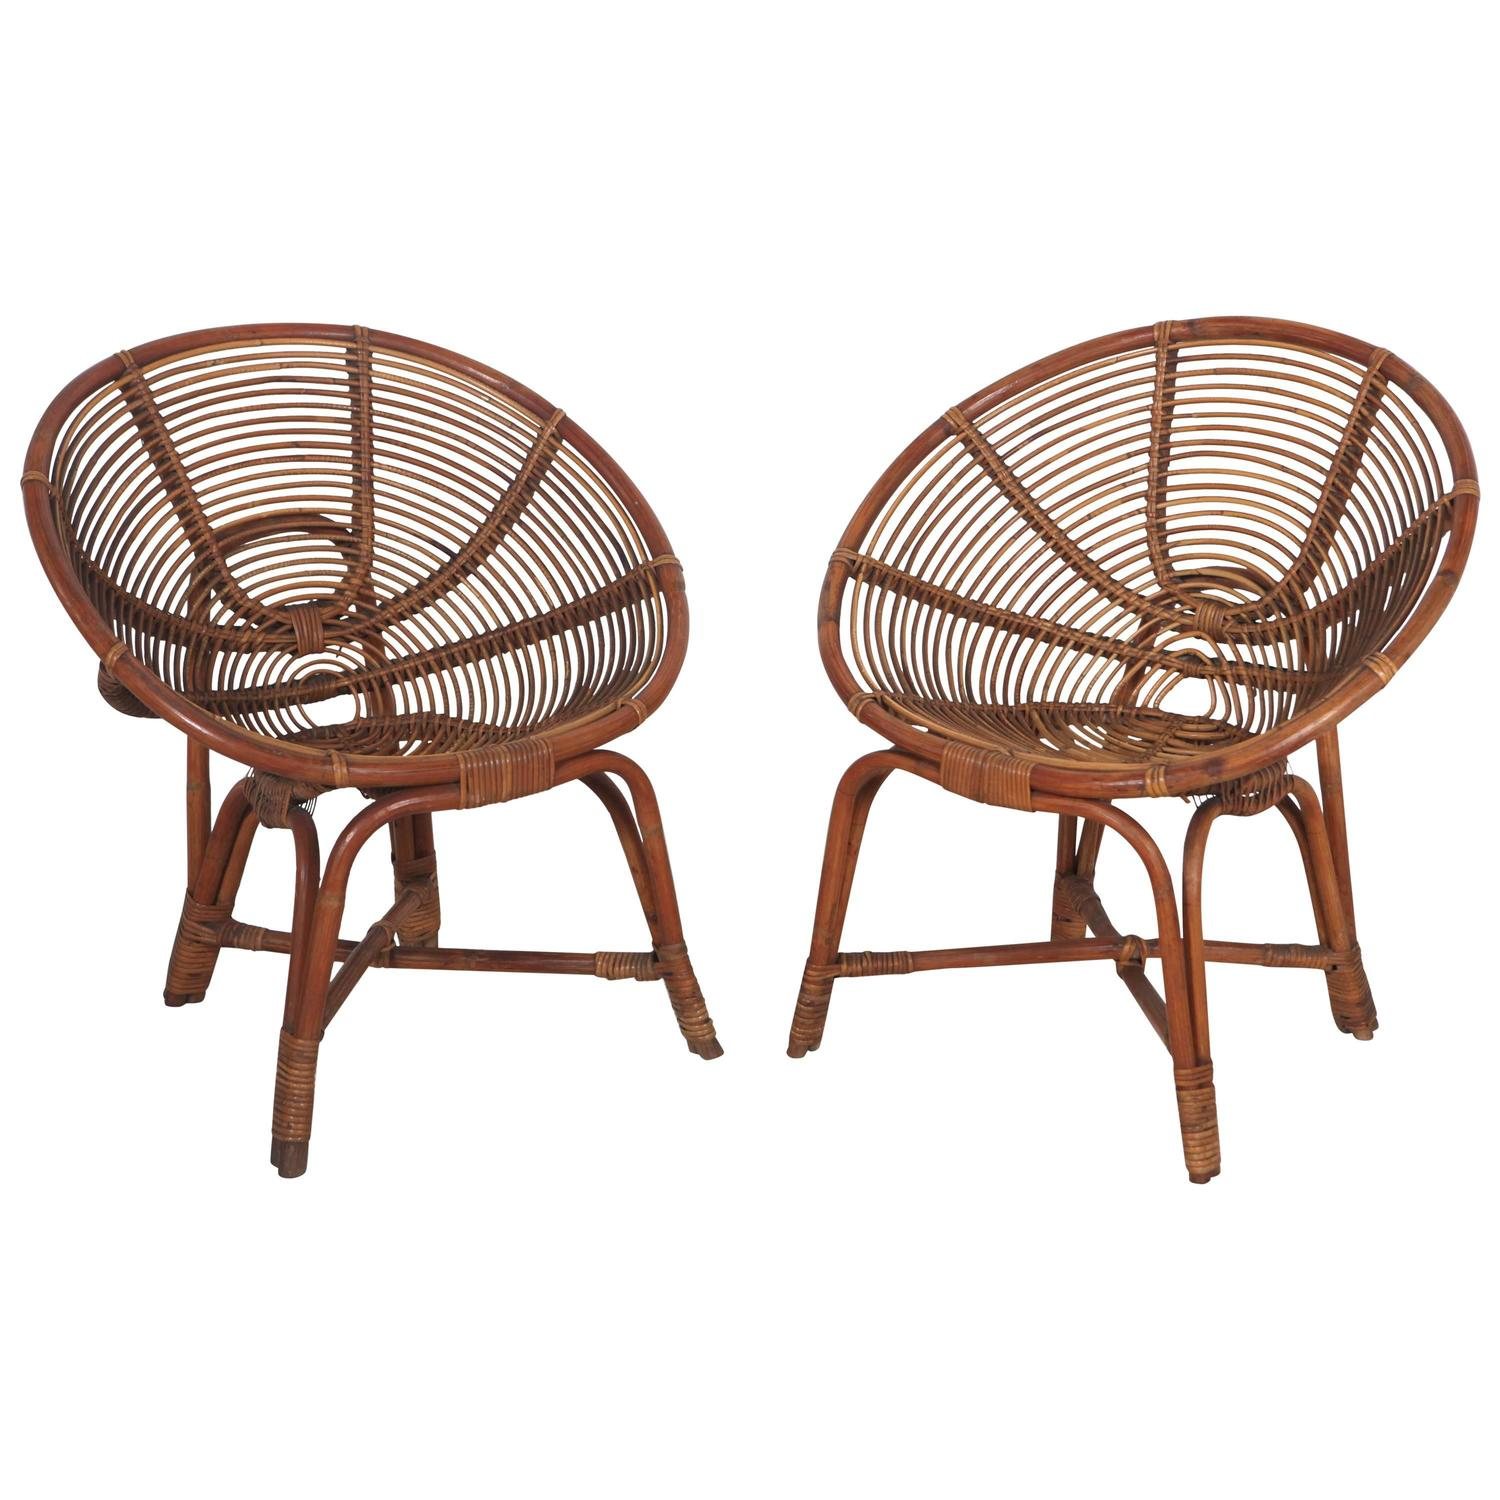 Italian Round Bamboo Lounge Chairs At 1stdibs